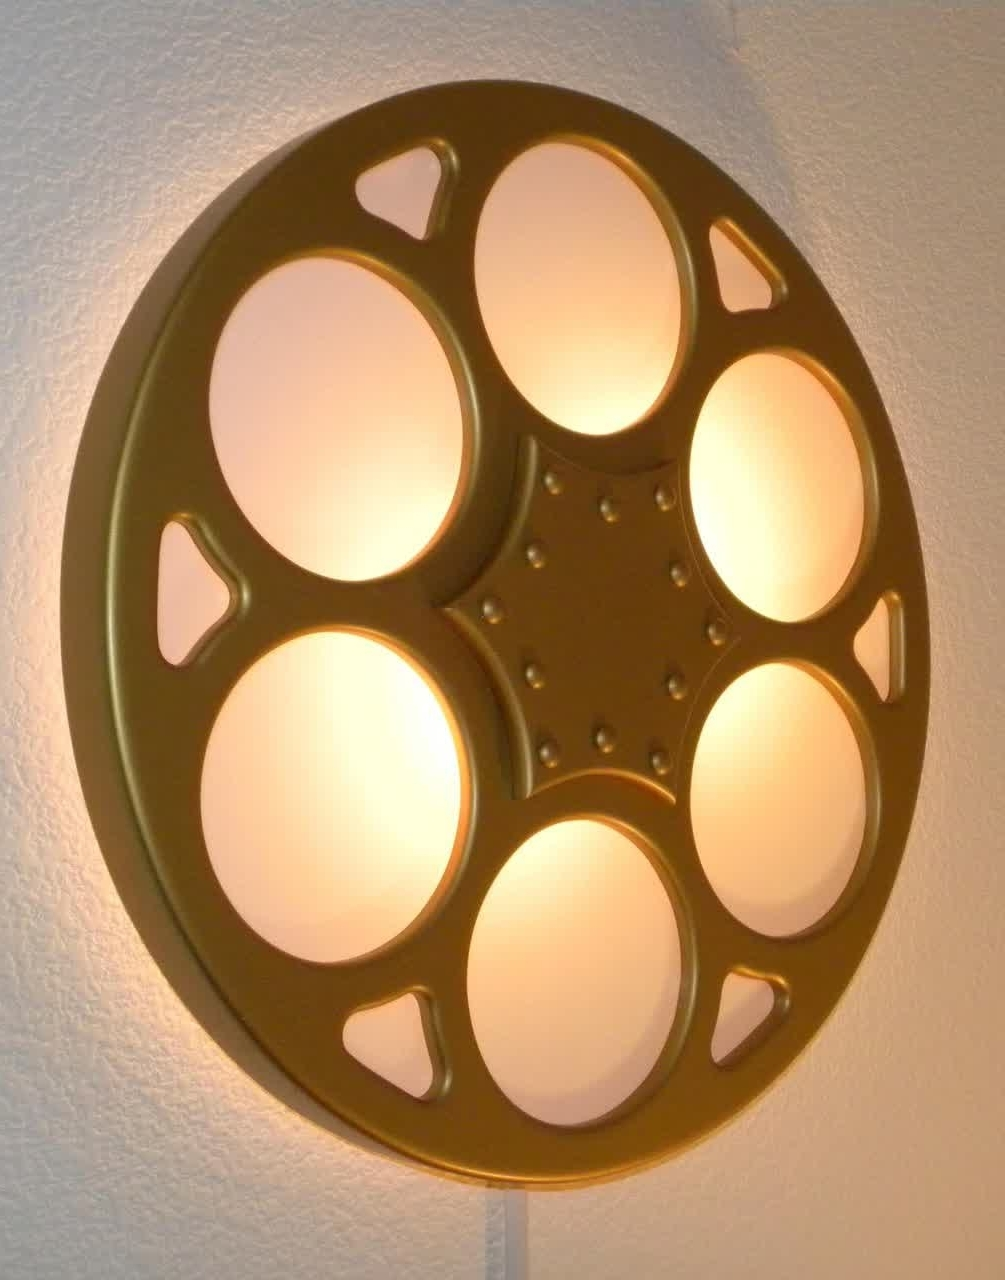 Newest Film Reel Wall Art Intended For Film Reel Wall Decor Ideas • Walls Decor (View 8 of 15)